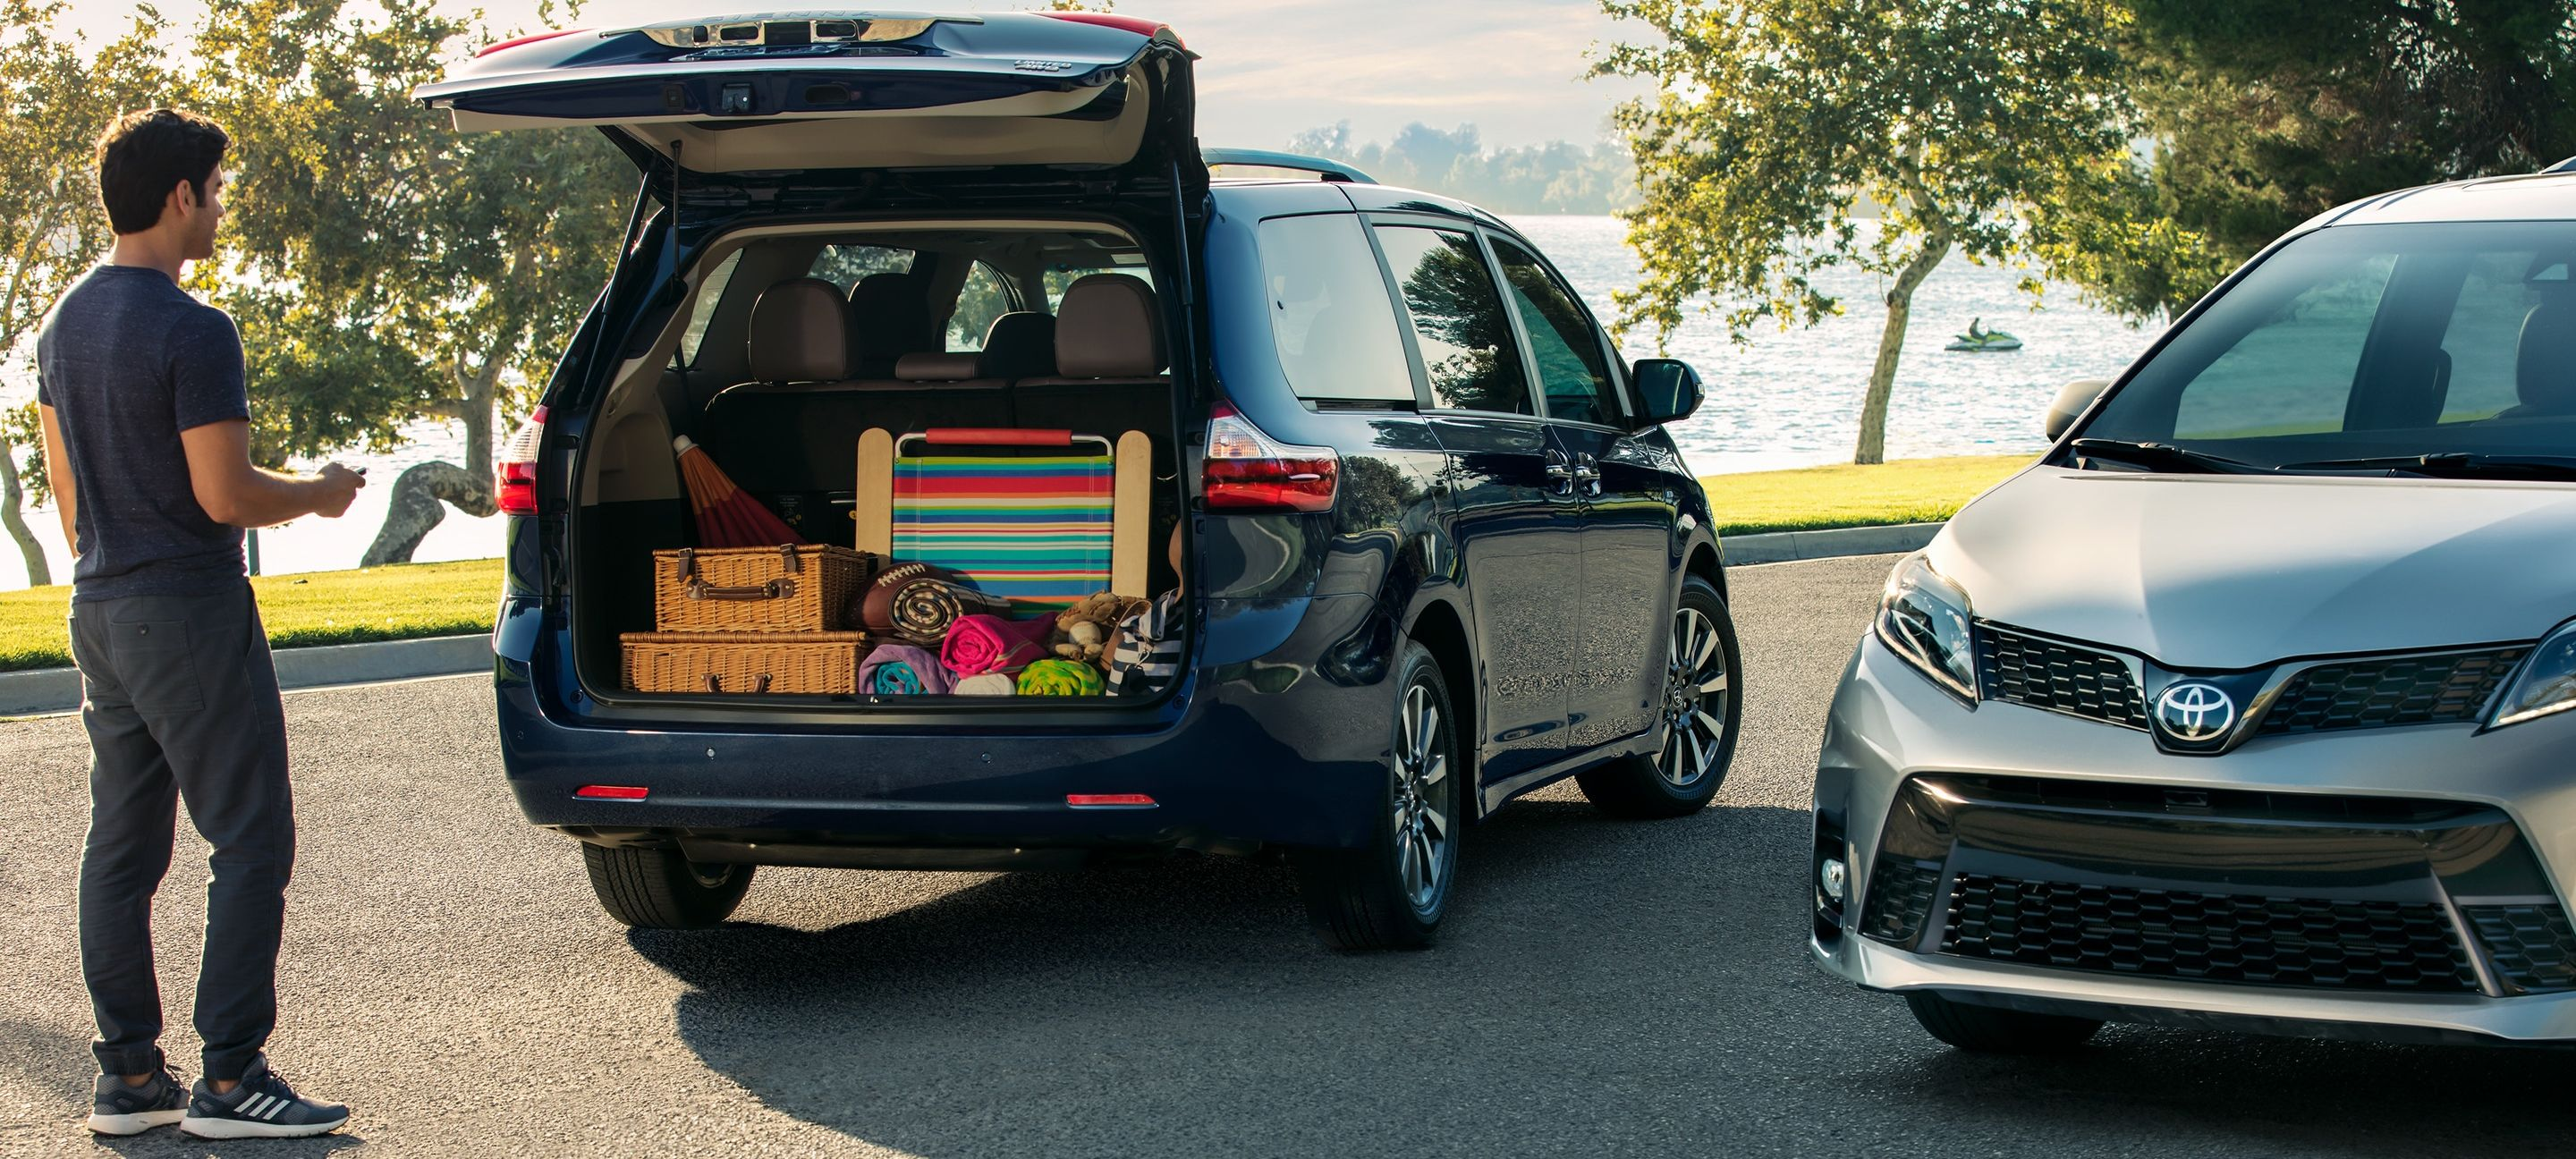 Easy Storage Access via the Sienna's Rear Liftgate